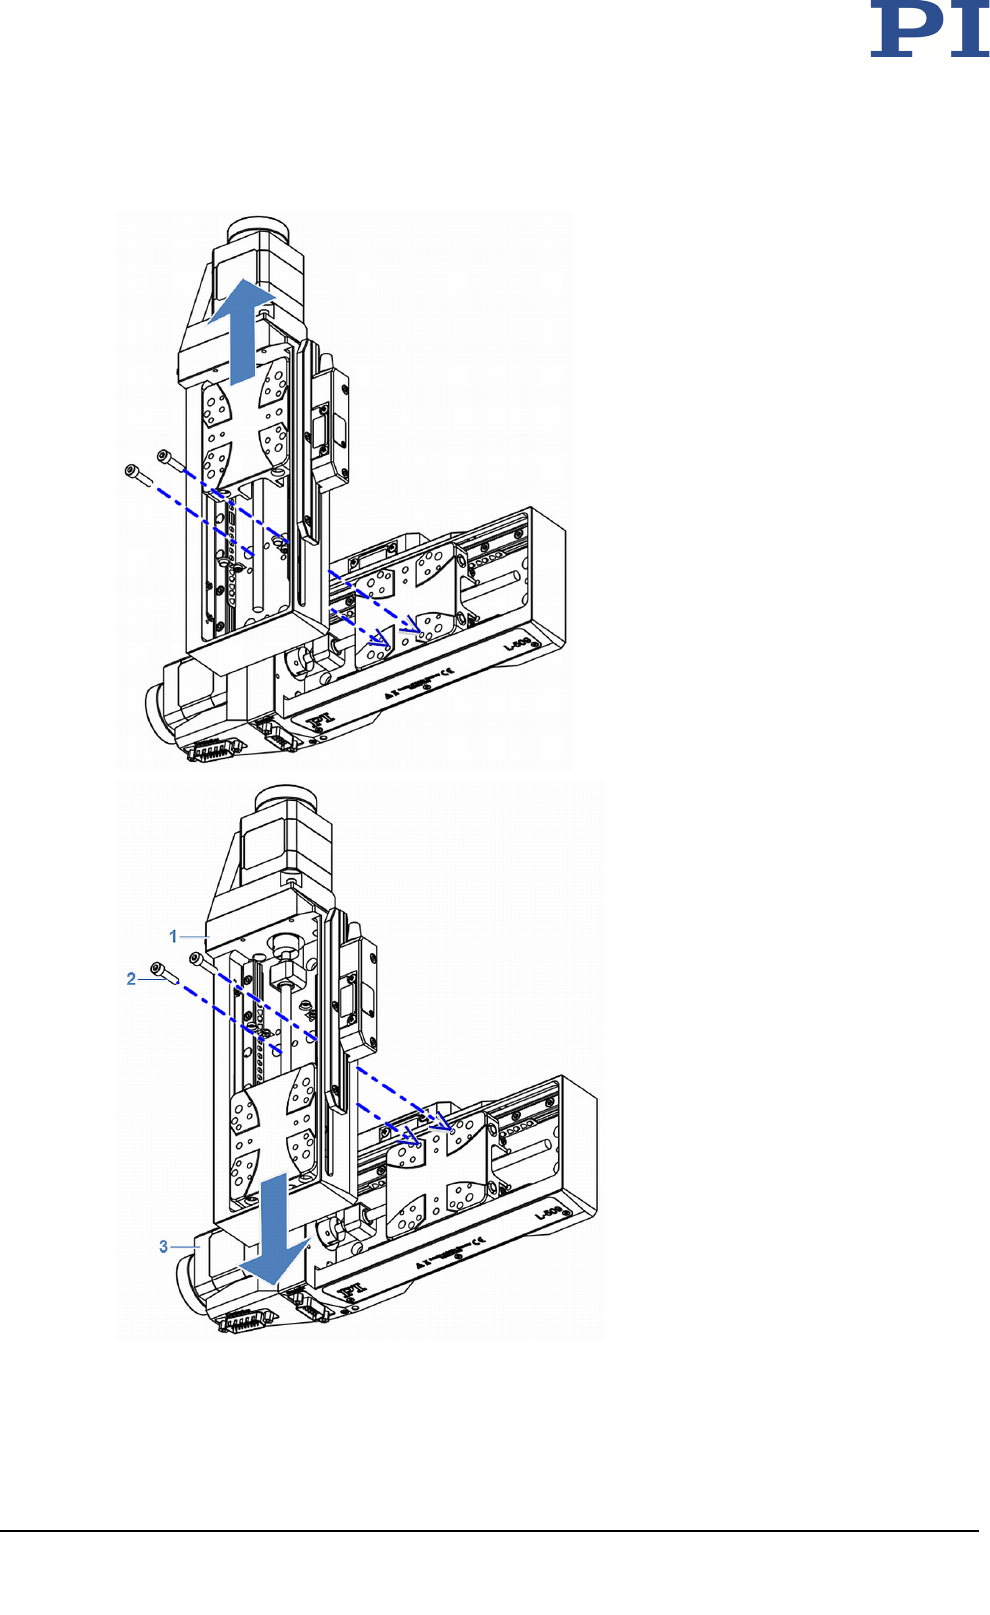 Physik Instrumente L 509 User Manual MP141E110